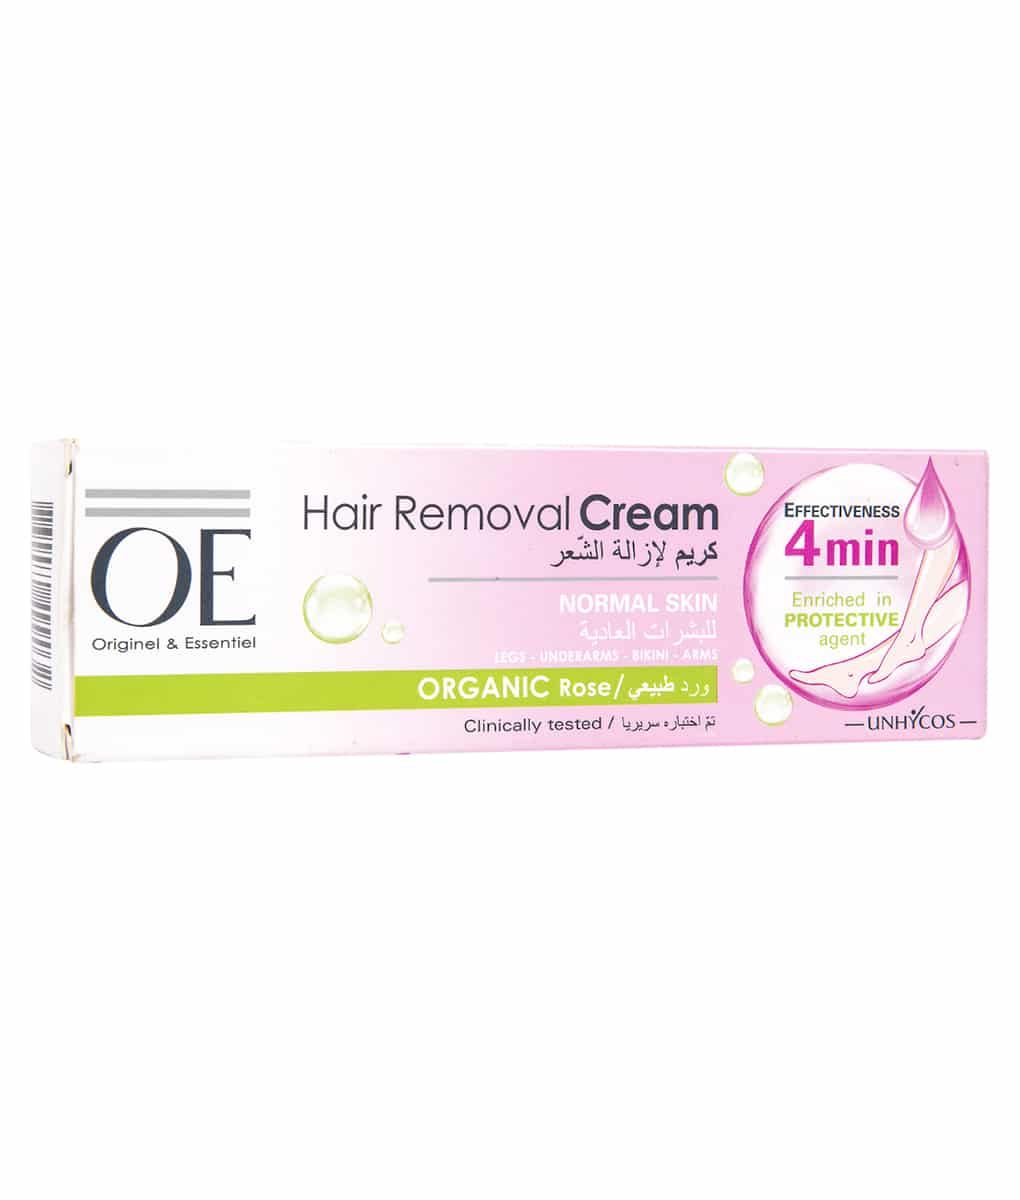 Oe Hair Removal Cream For Normal Skin Kasha